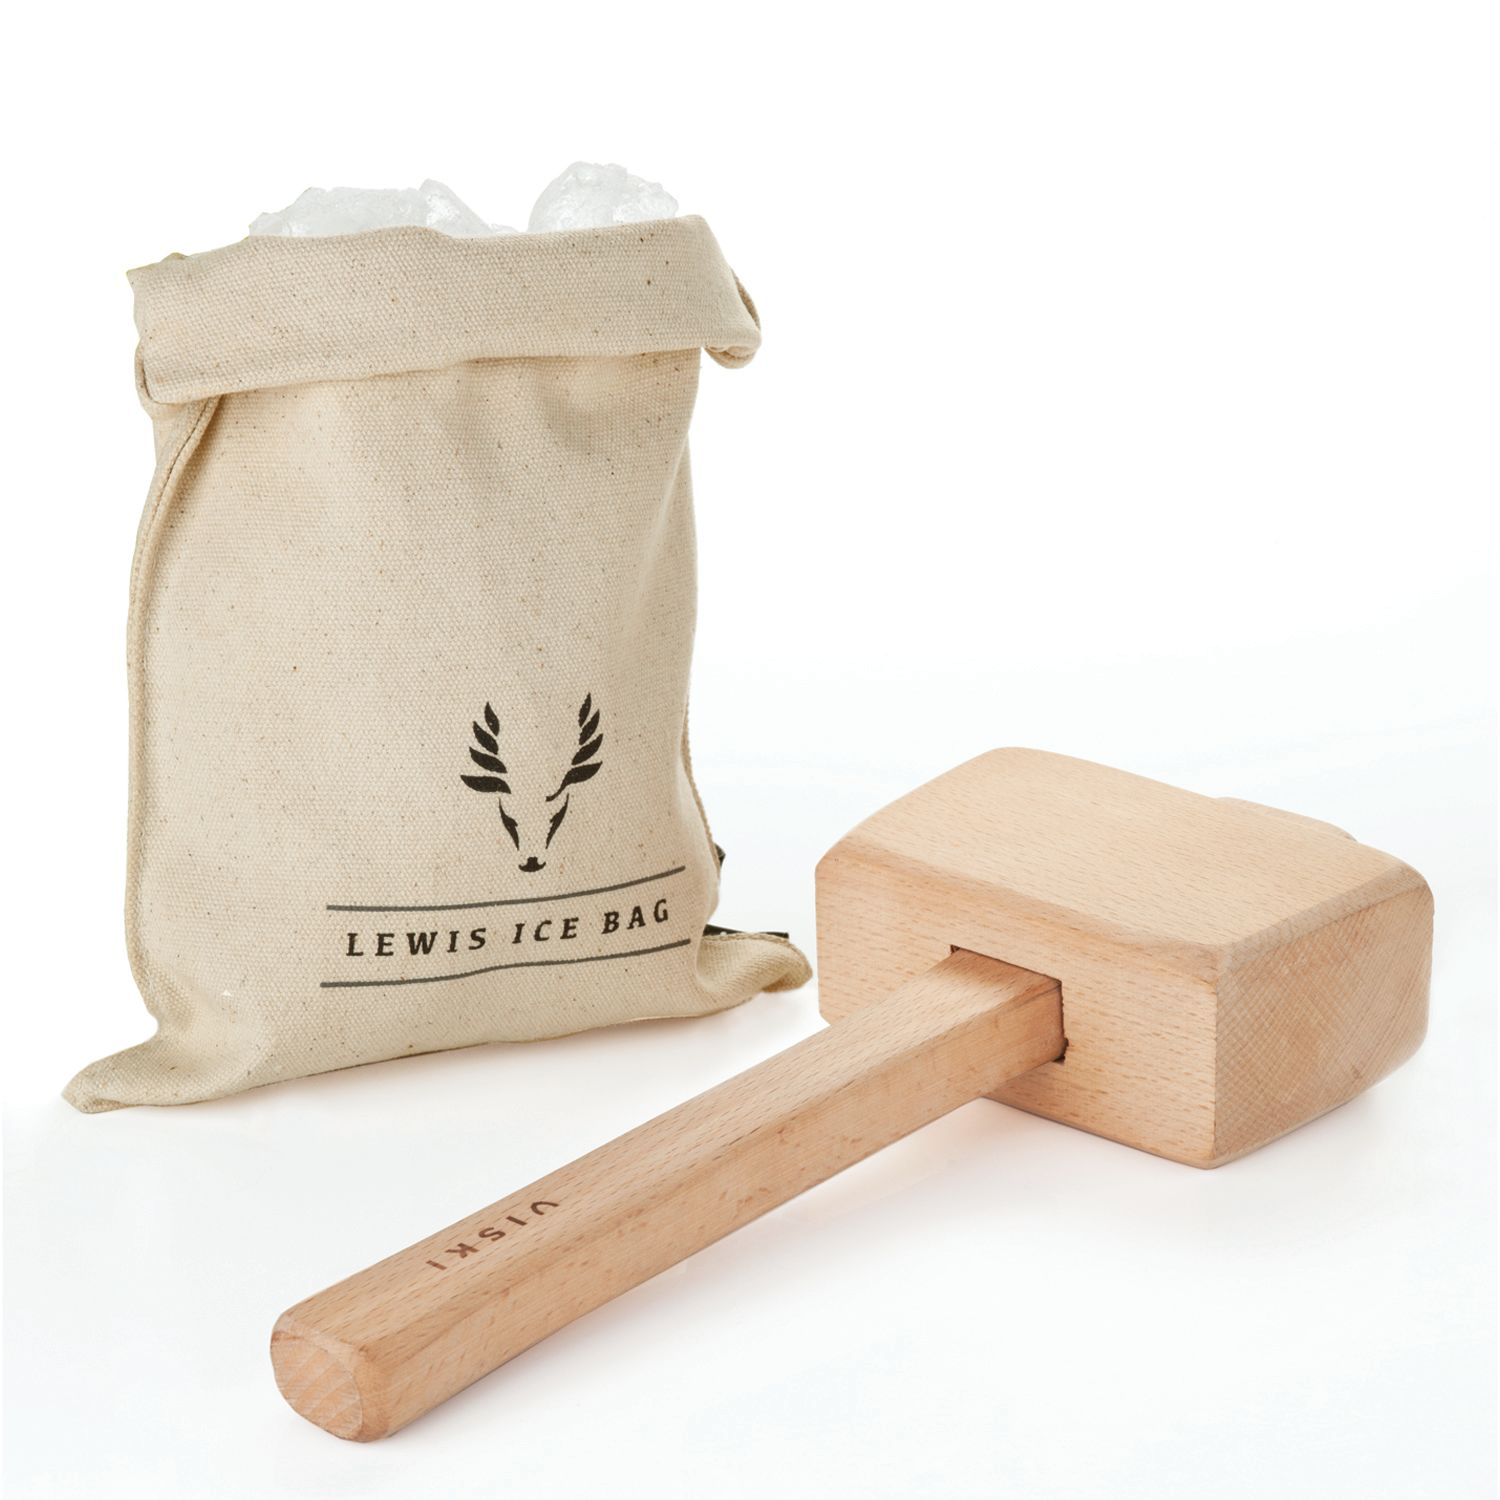 wine.com Viski Professional Lewis Ice Bag and Mallet  Gift Product Image